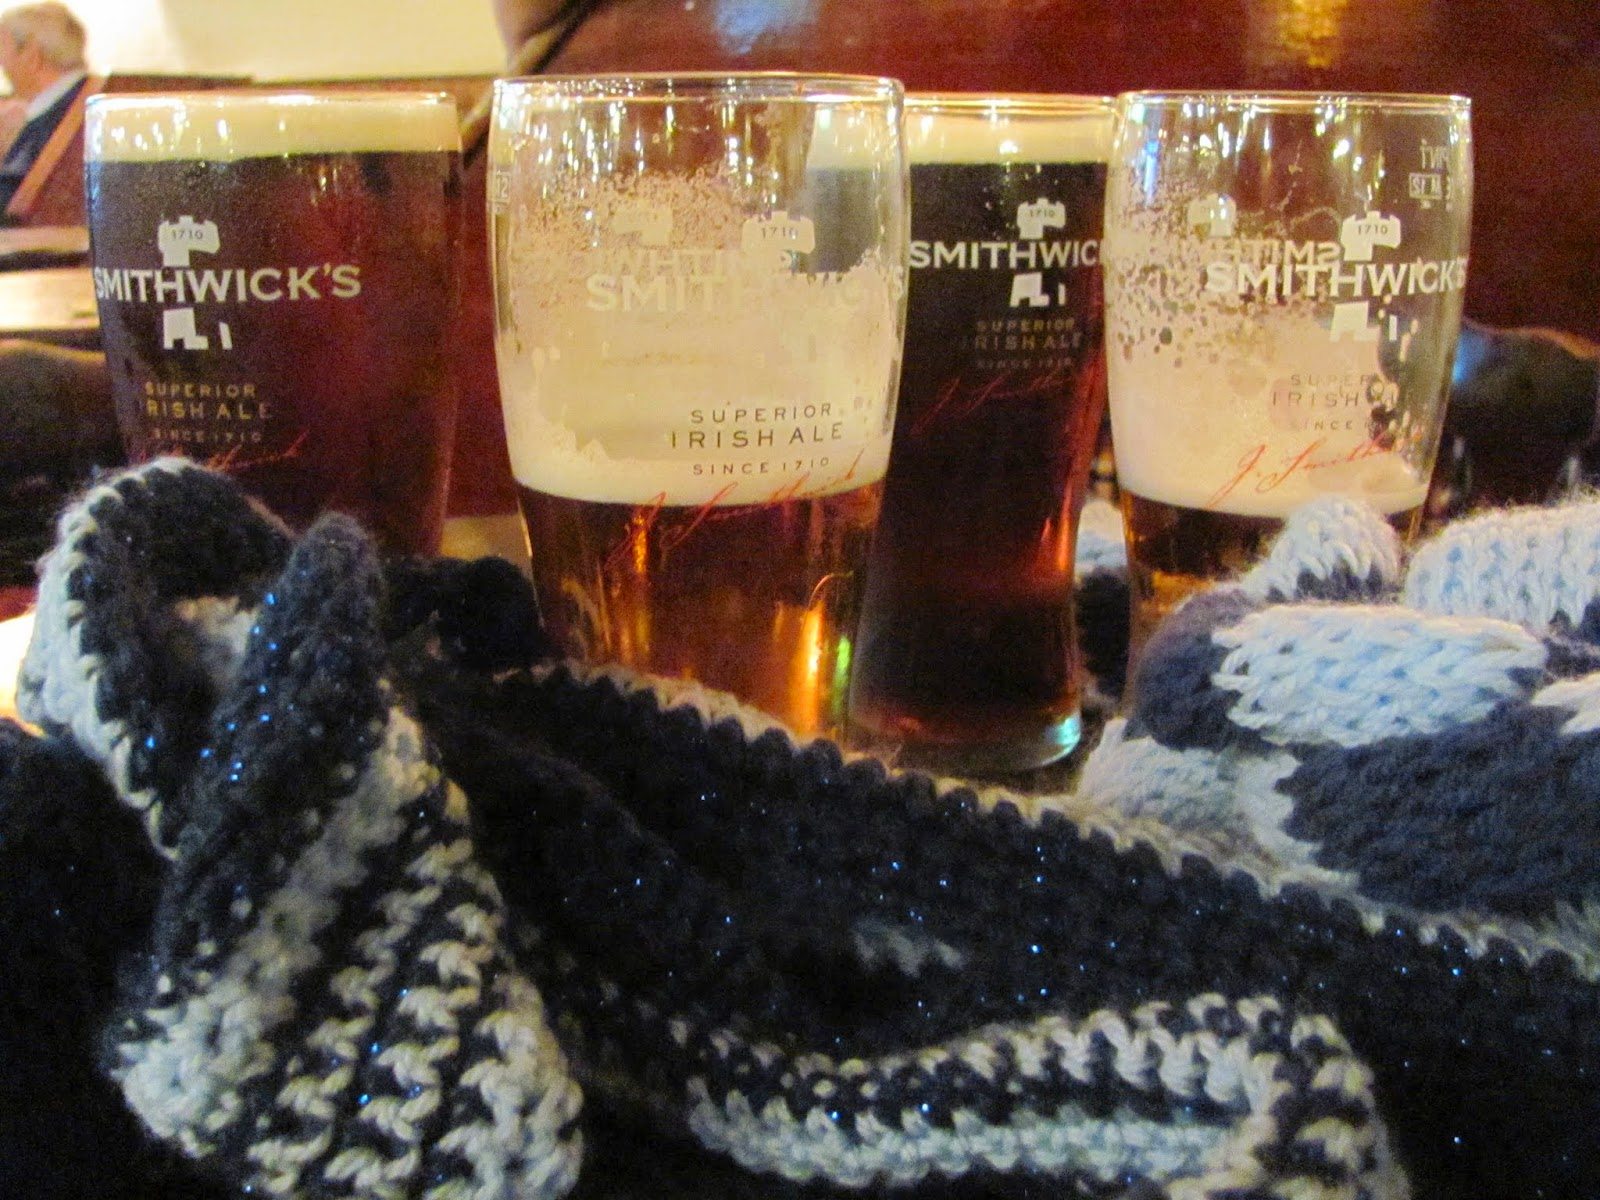 Smithwicks and Dublin scarves for Hurling